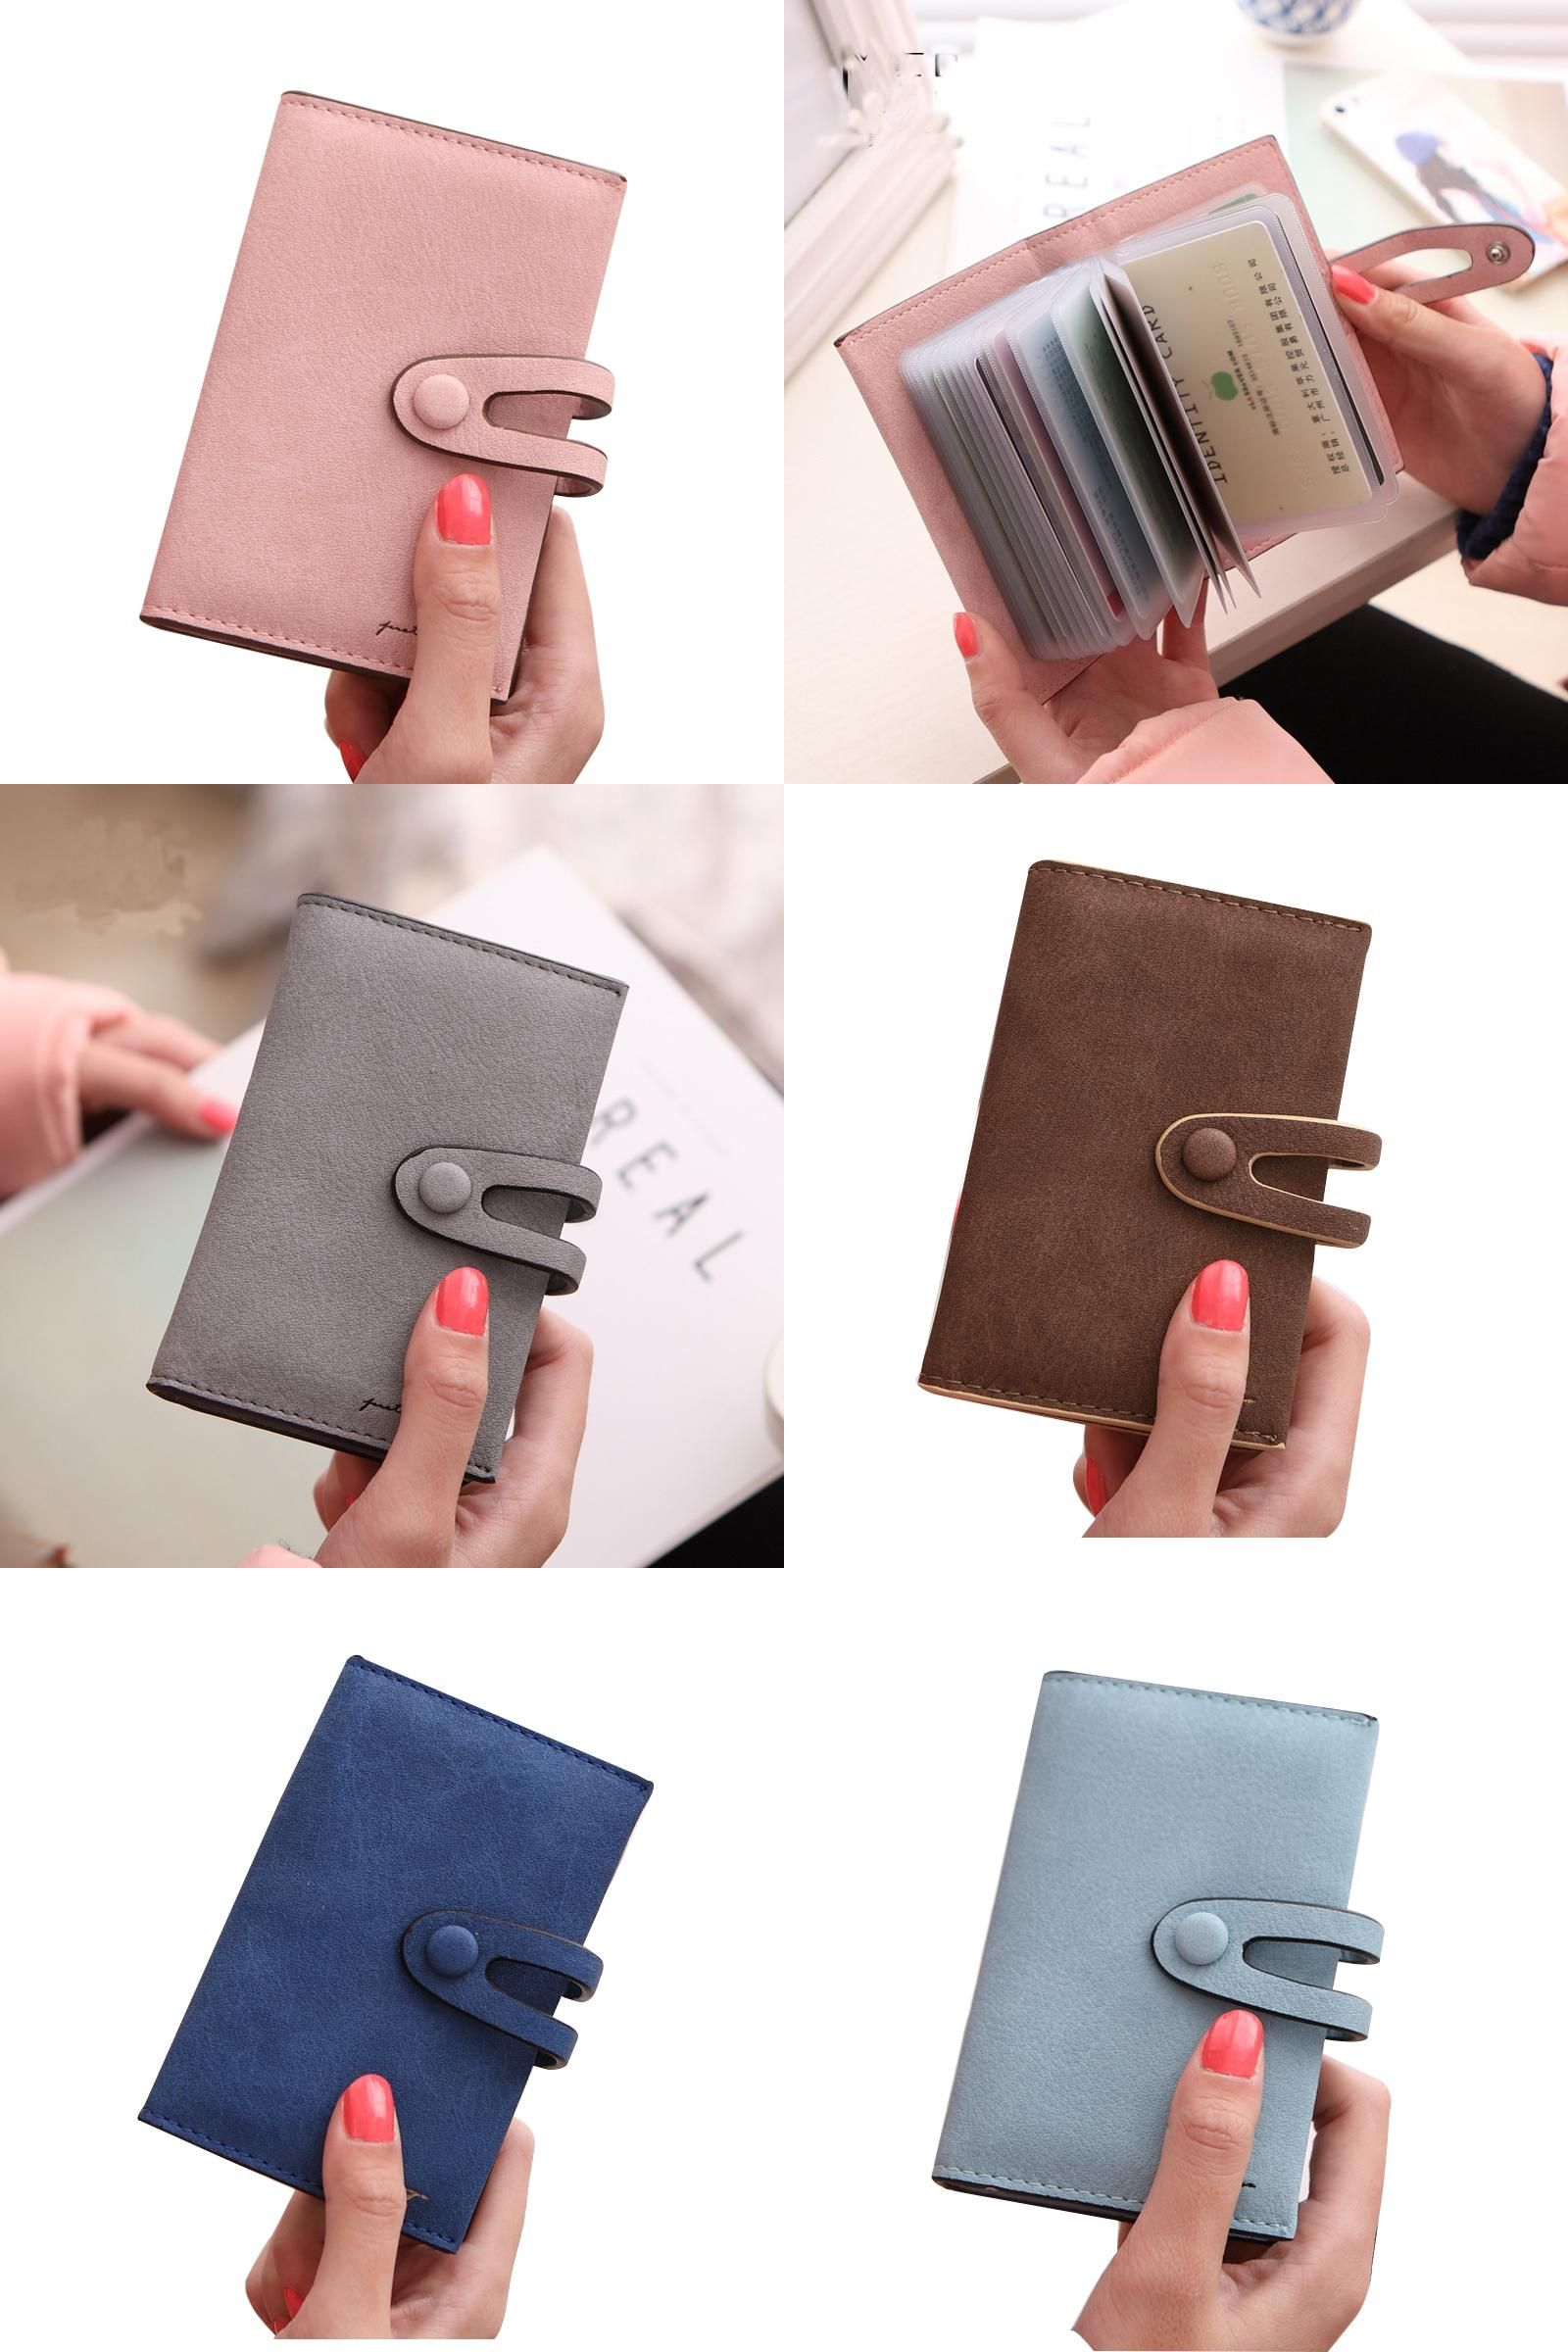 Visit to Buy] 20 Card Slots Women Card Holders Fashion Nubuck Pu ...